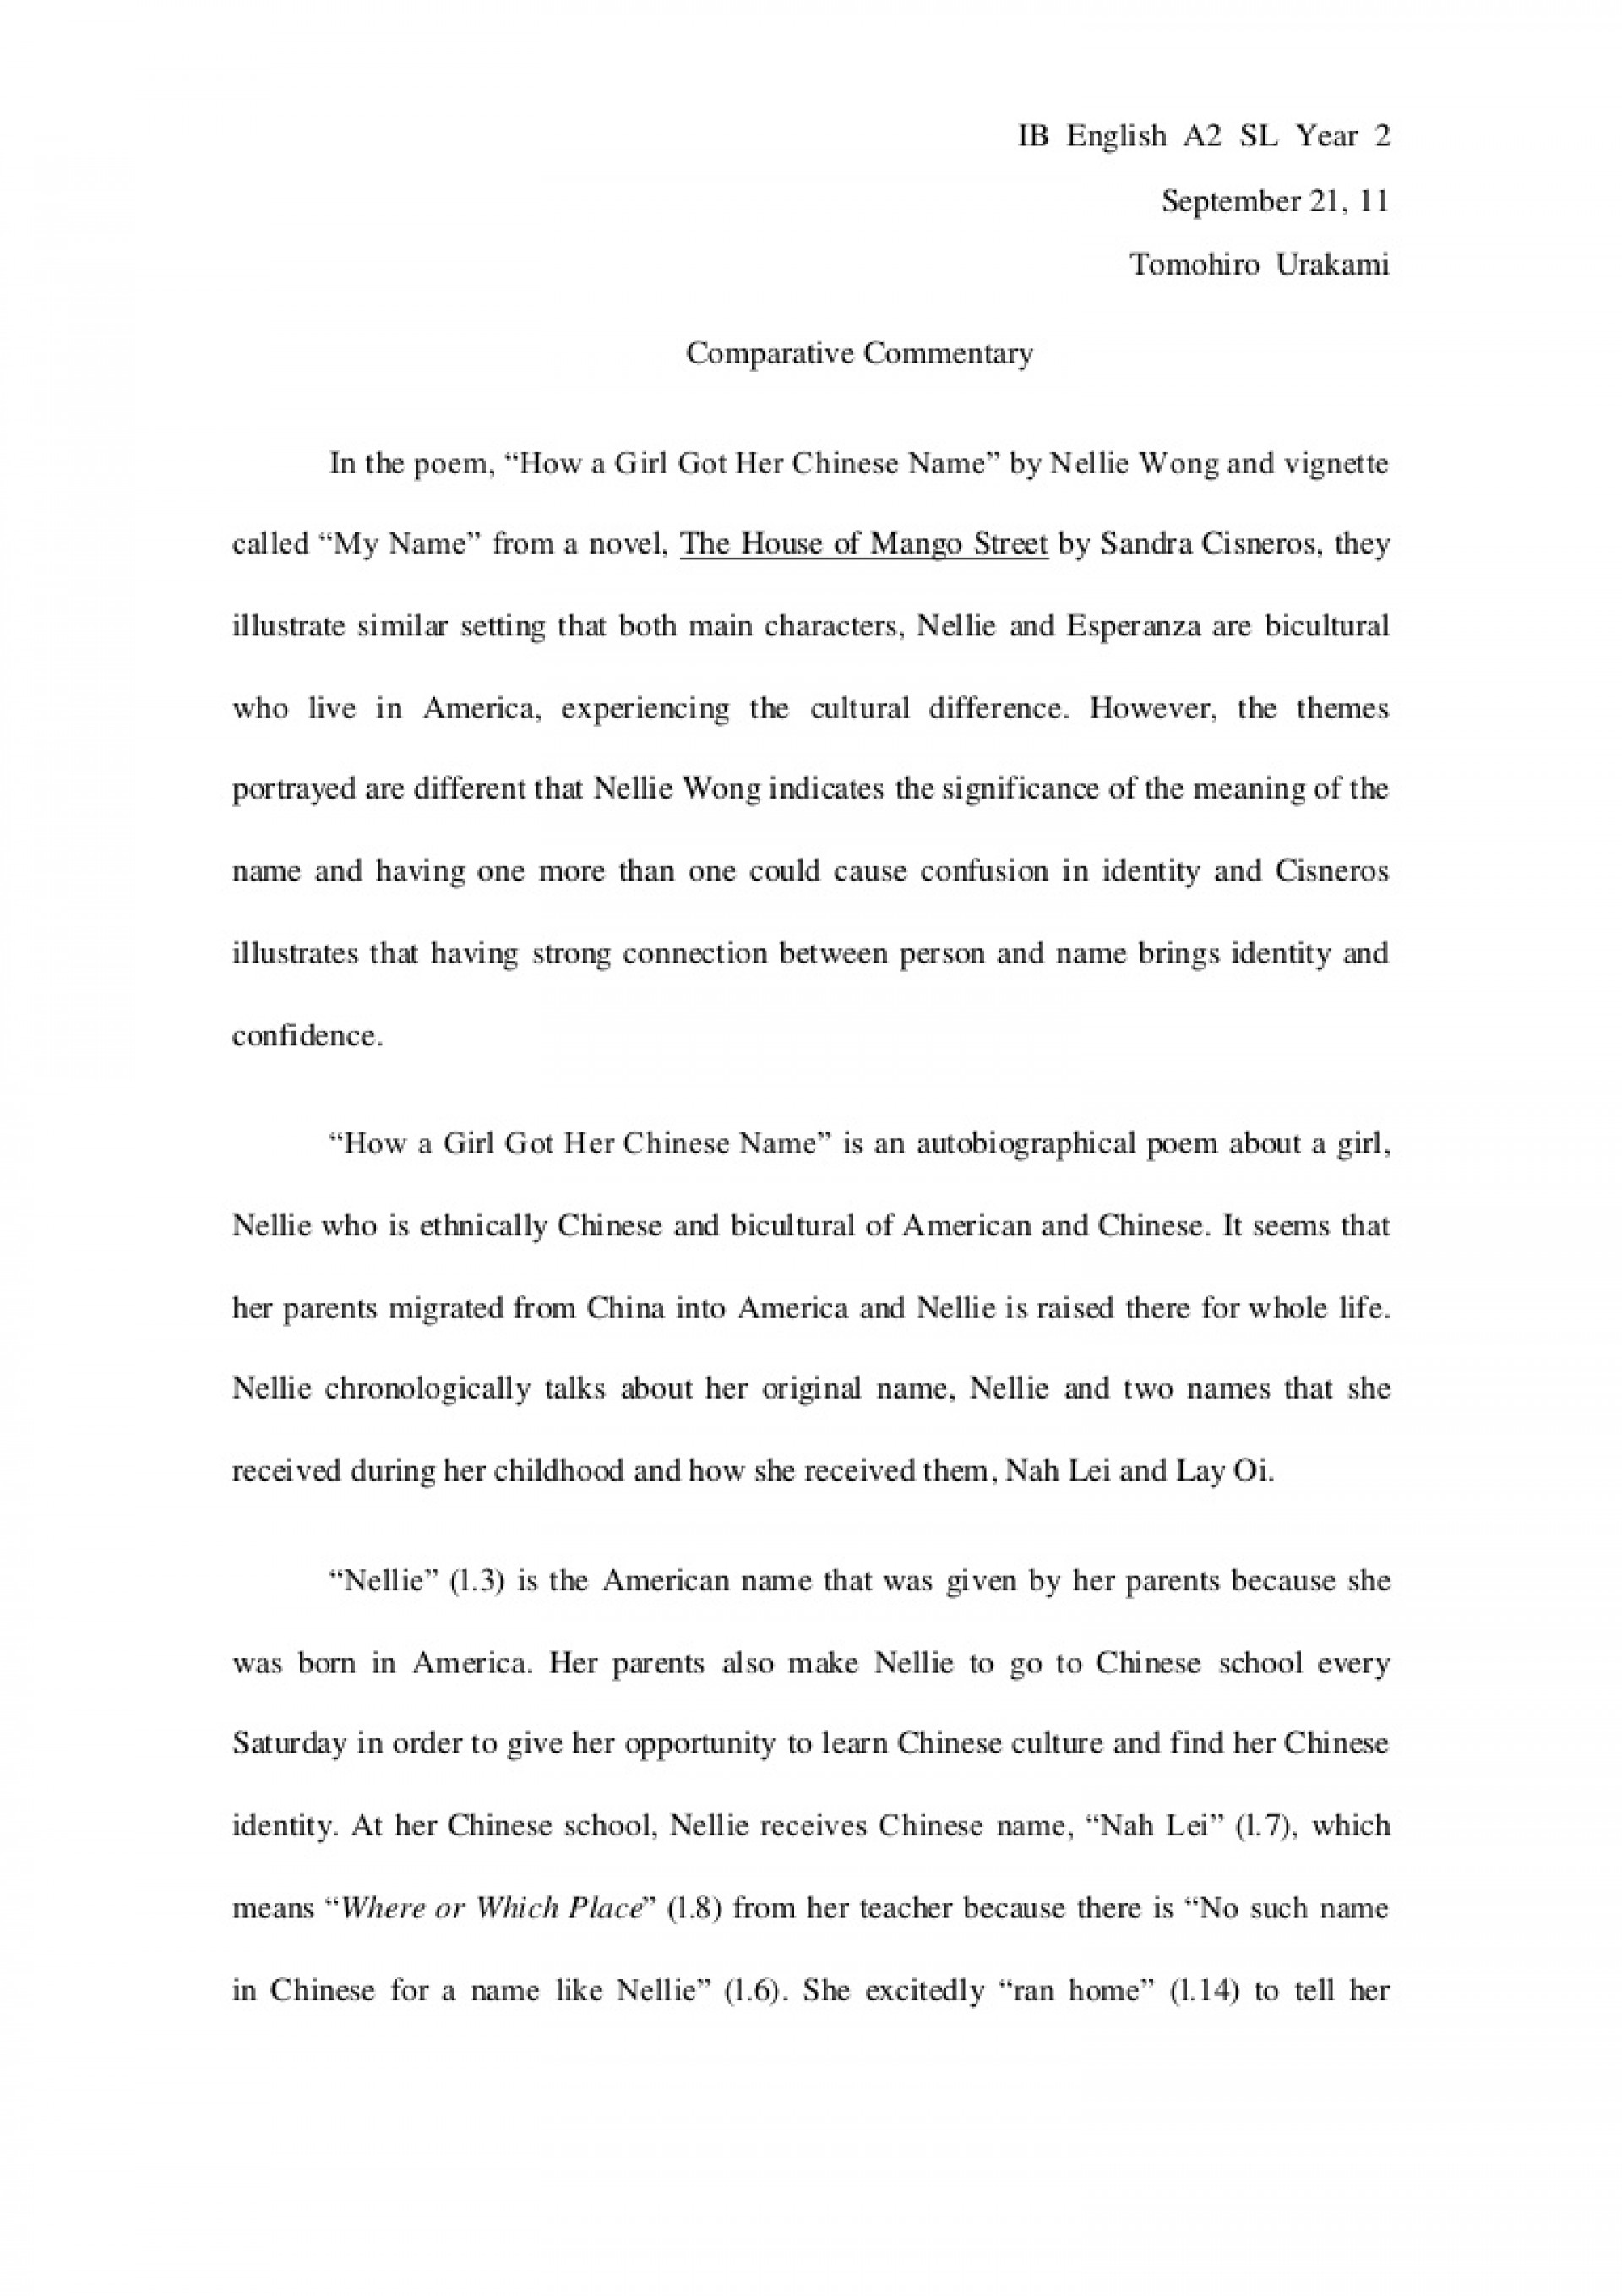 013 Essay Example What Is An American Stupendous Thesis Your Dream Ideas 1920